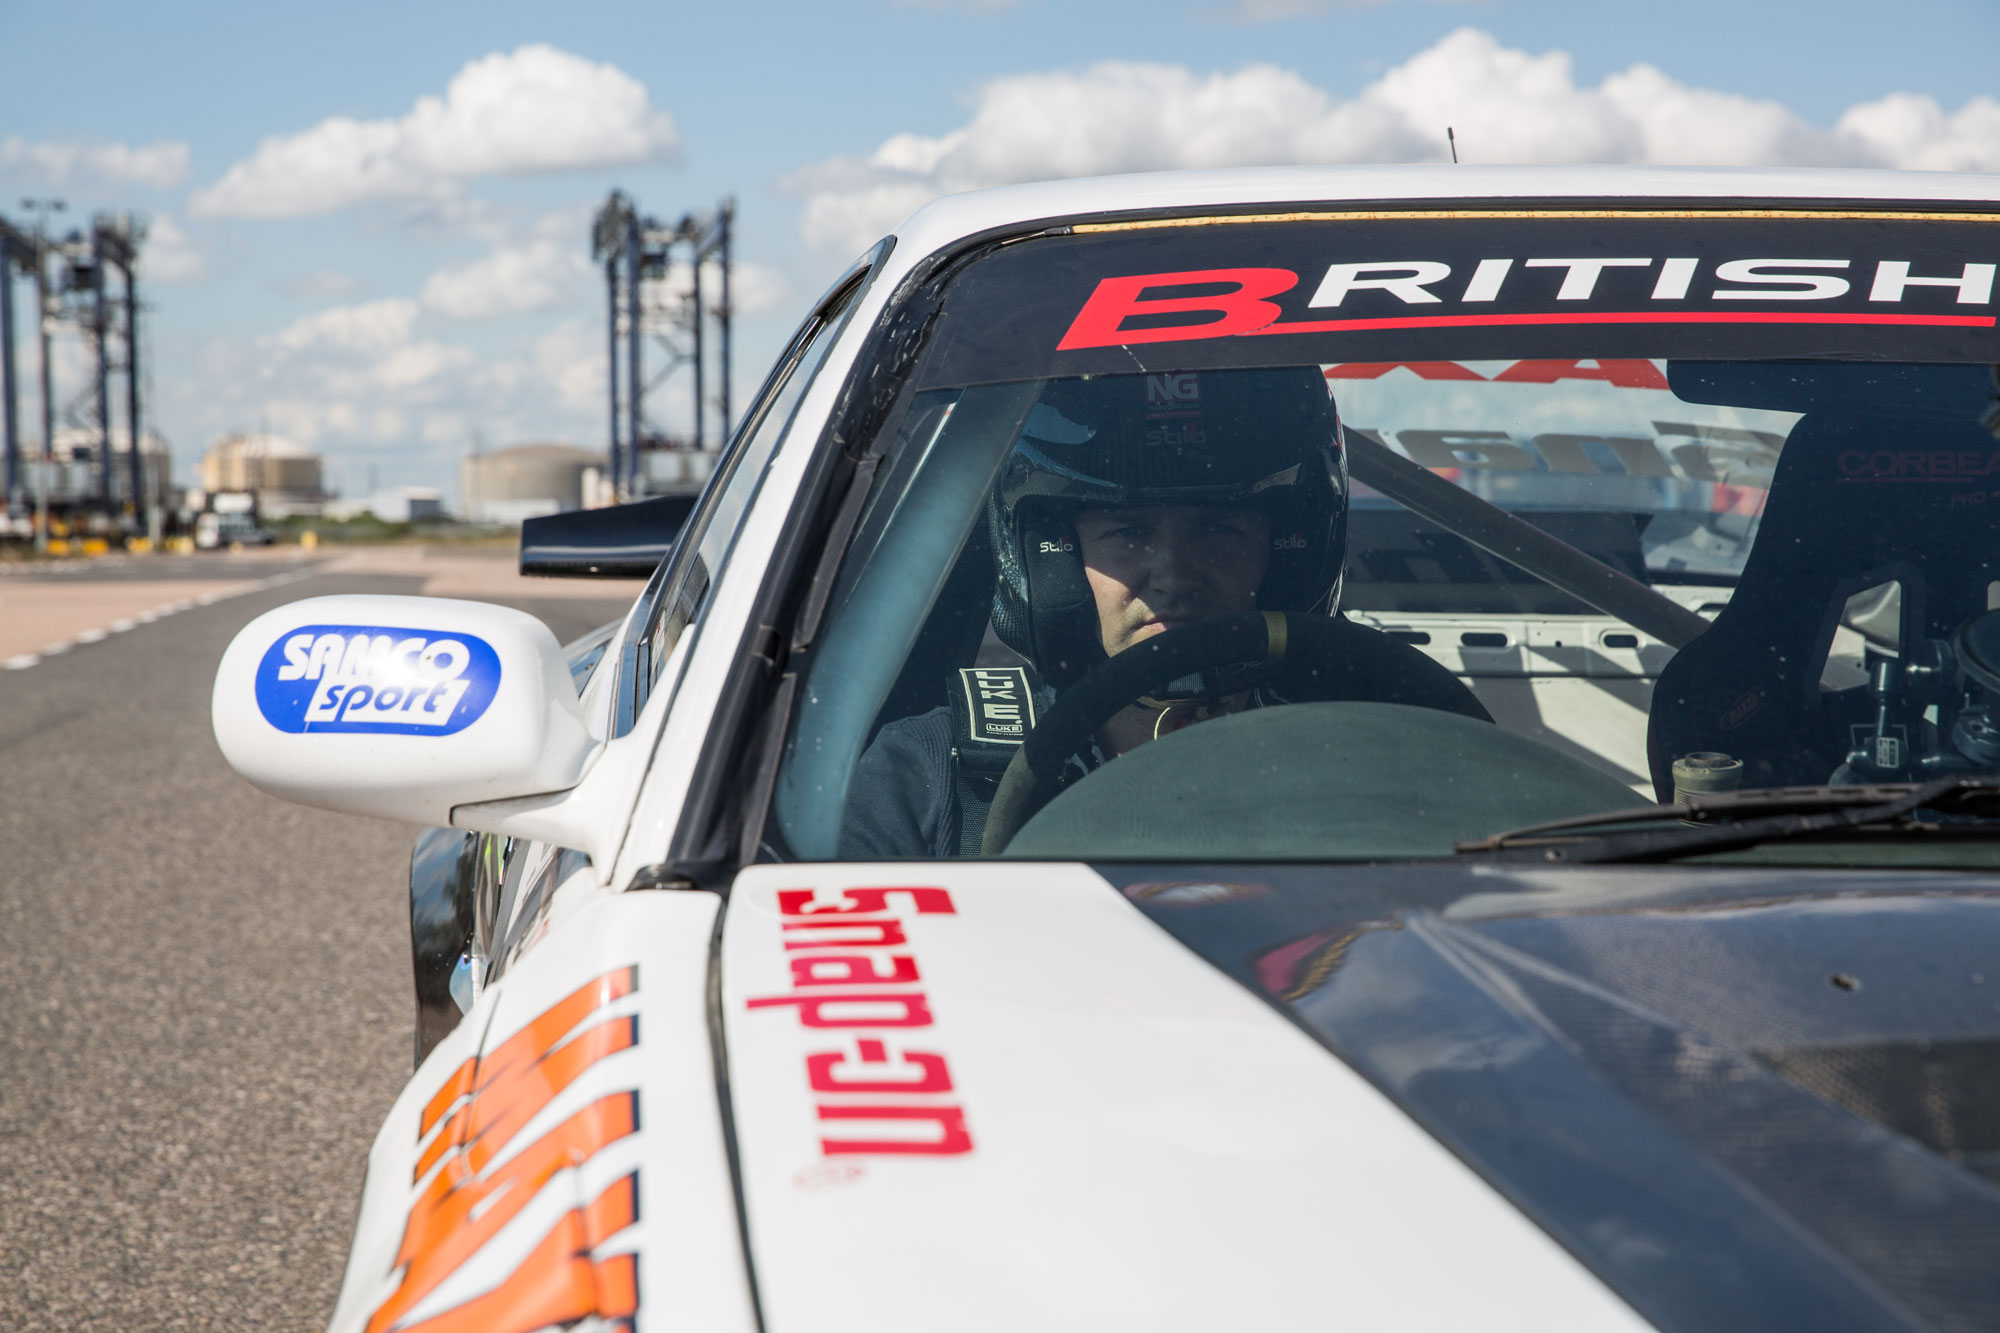 Ben Collins - Stunt Driver, Motor Racing Champion, And A Top Gear Stig 6